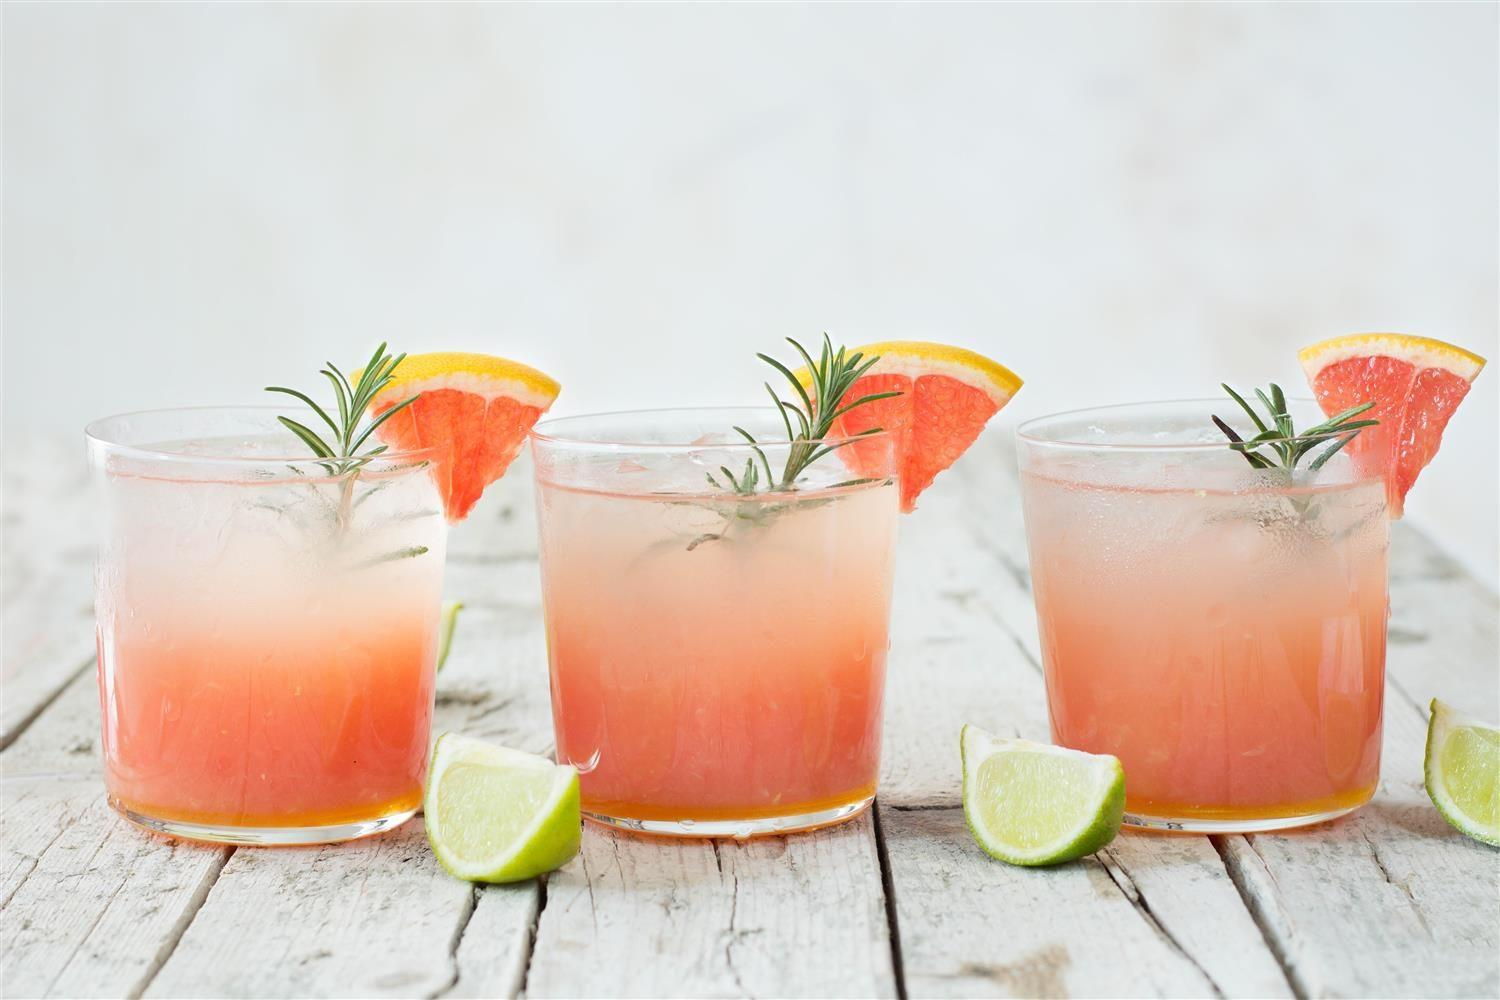 cold grapefruit-lime cocktail with ginger and rosemary to take you ...